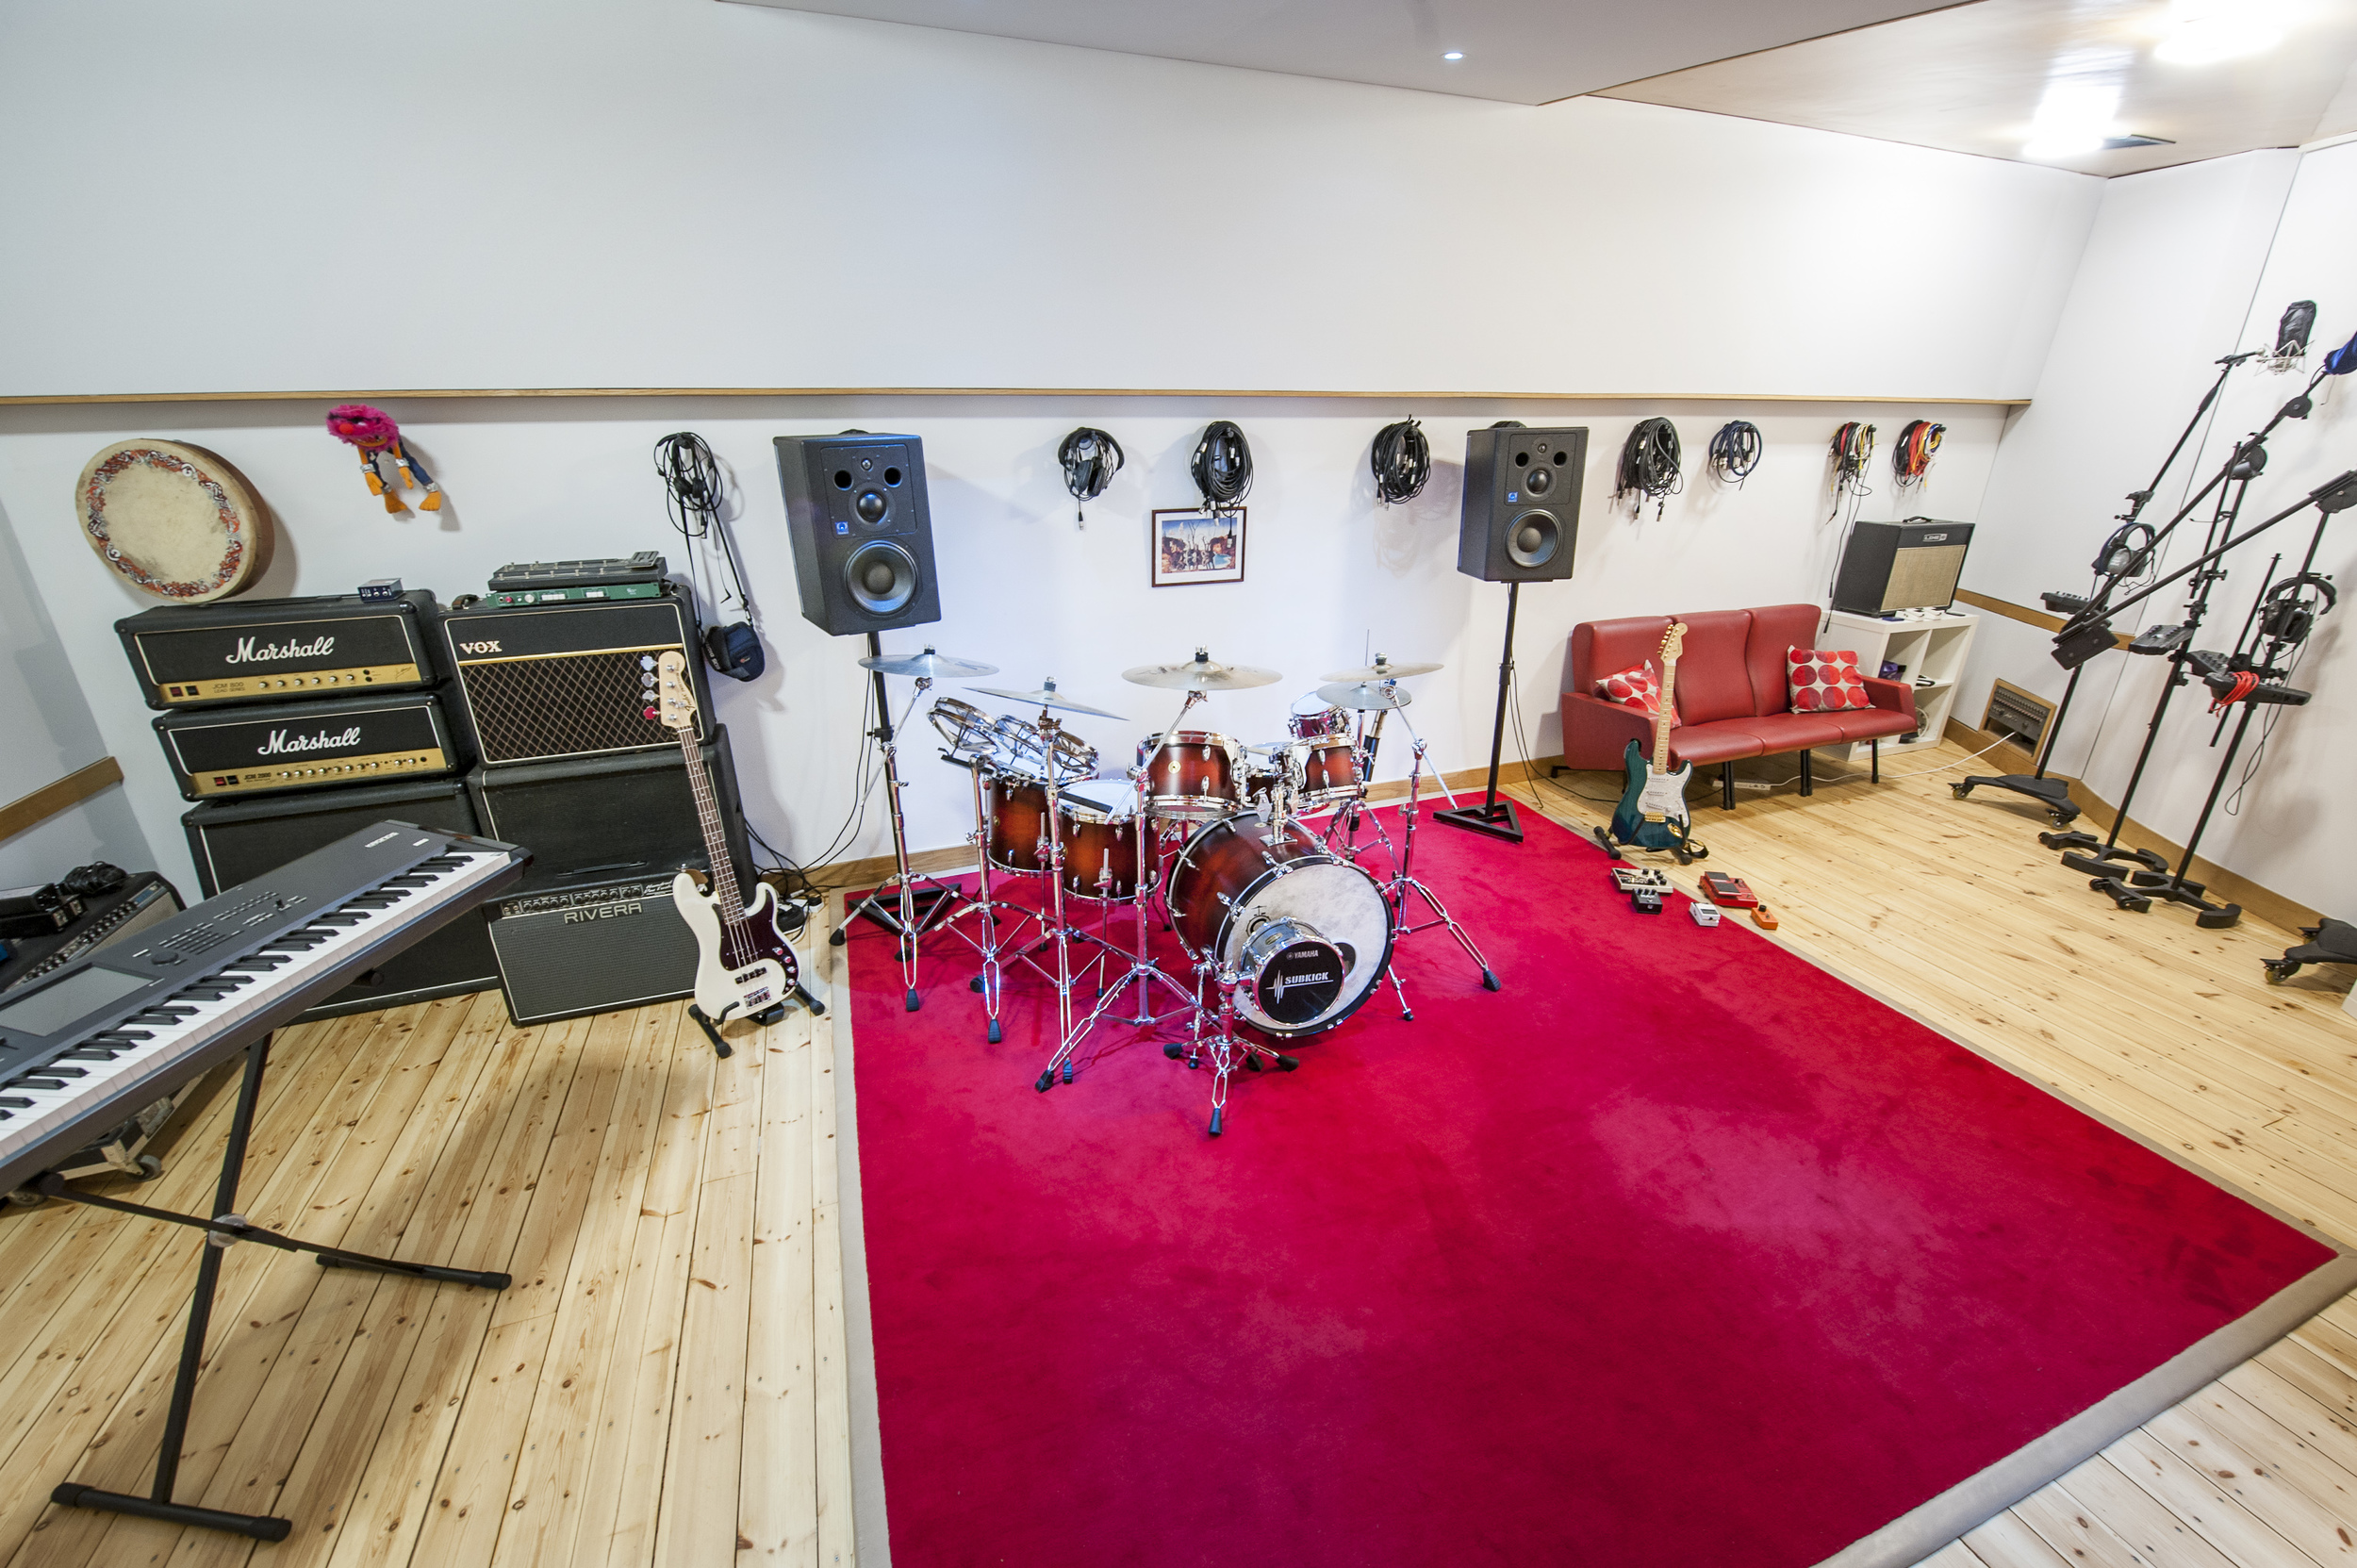 Live Room with a selection of new and vintage guitar and bass amps, pedals, drum kits and percussion